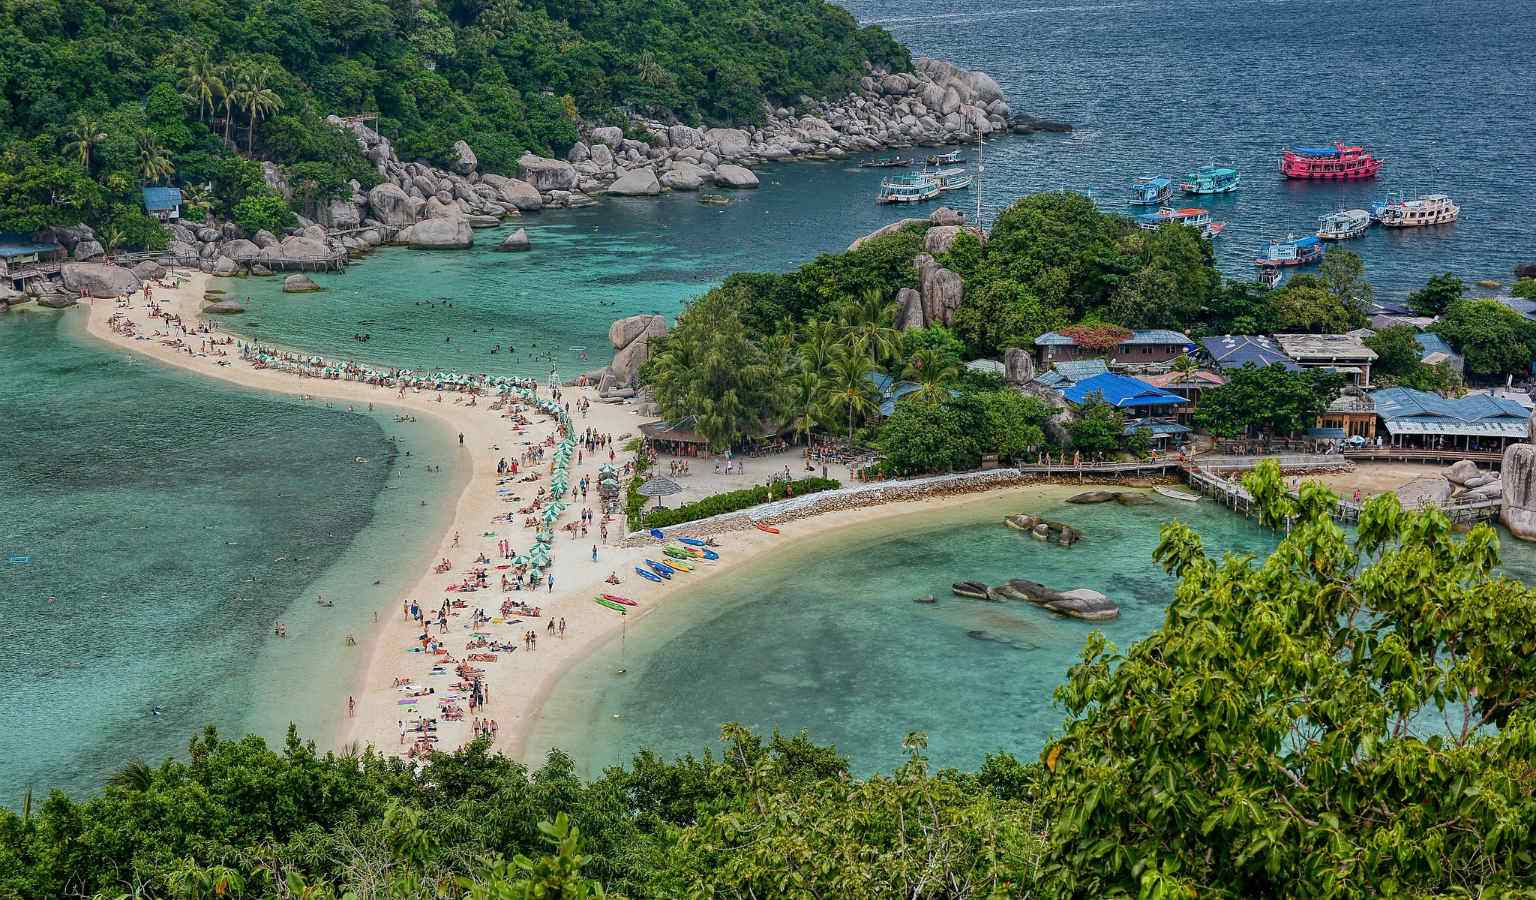 Koh Nang Yuan (belongs to KohTao) seen from a distance